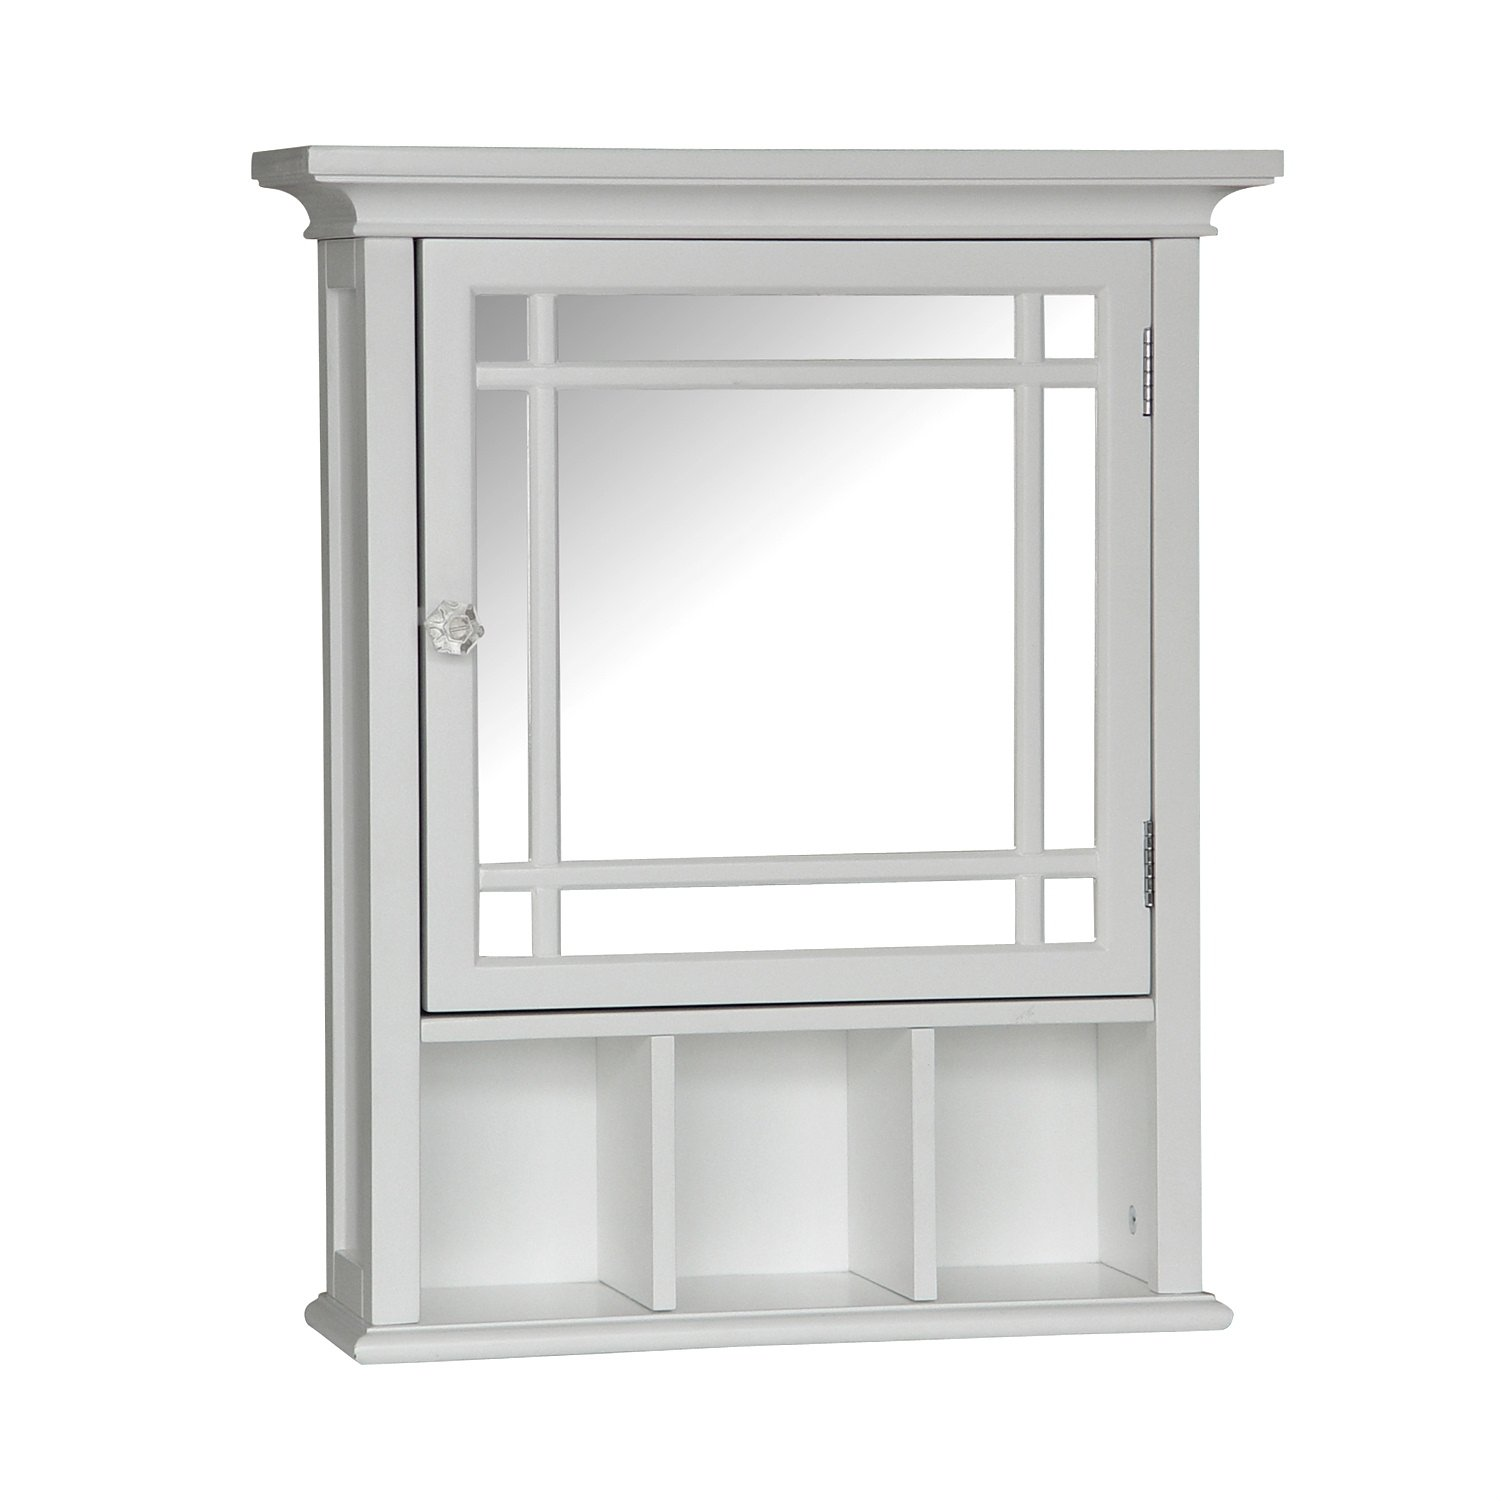 Elegant Home Fashions Neal Collection Mirrored Medicine Cabinet, White